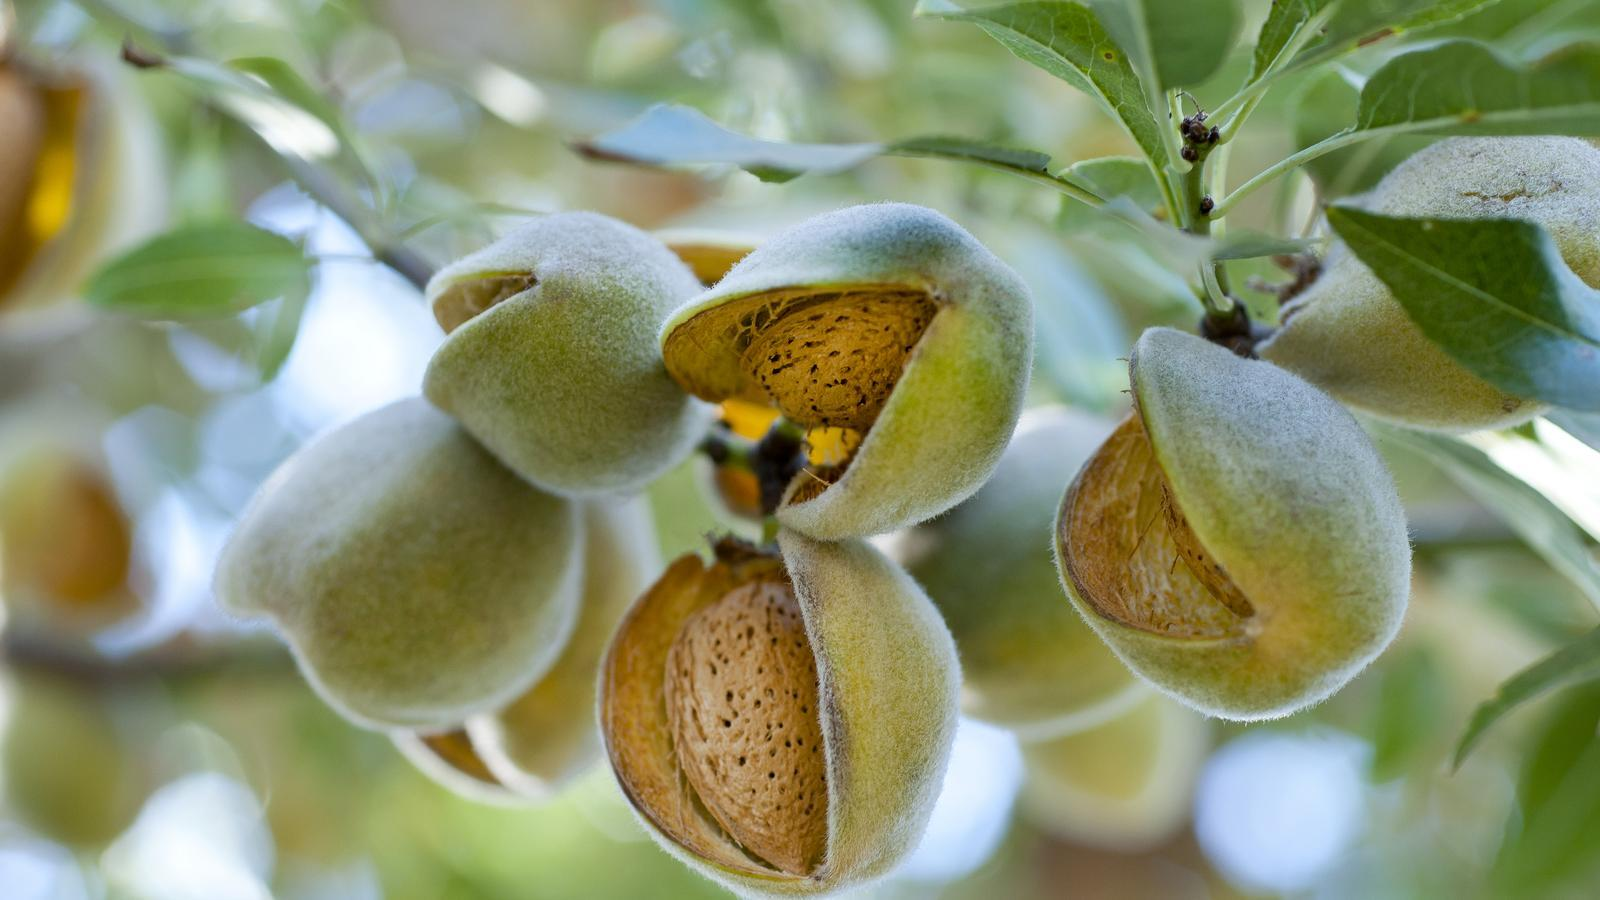 close up of almond fruit on tree